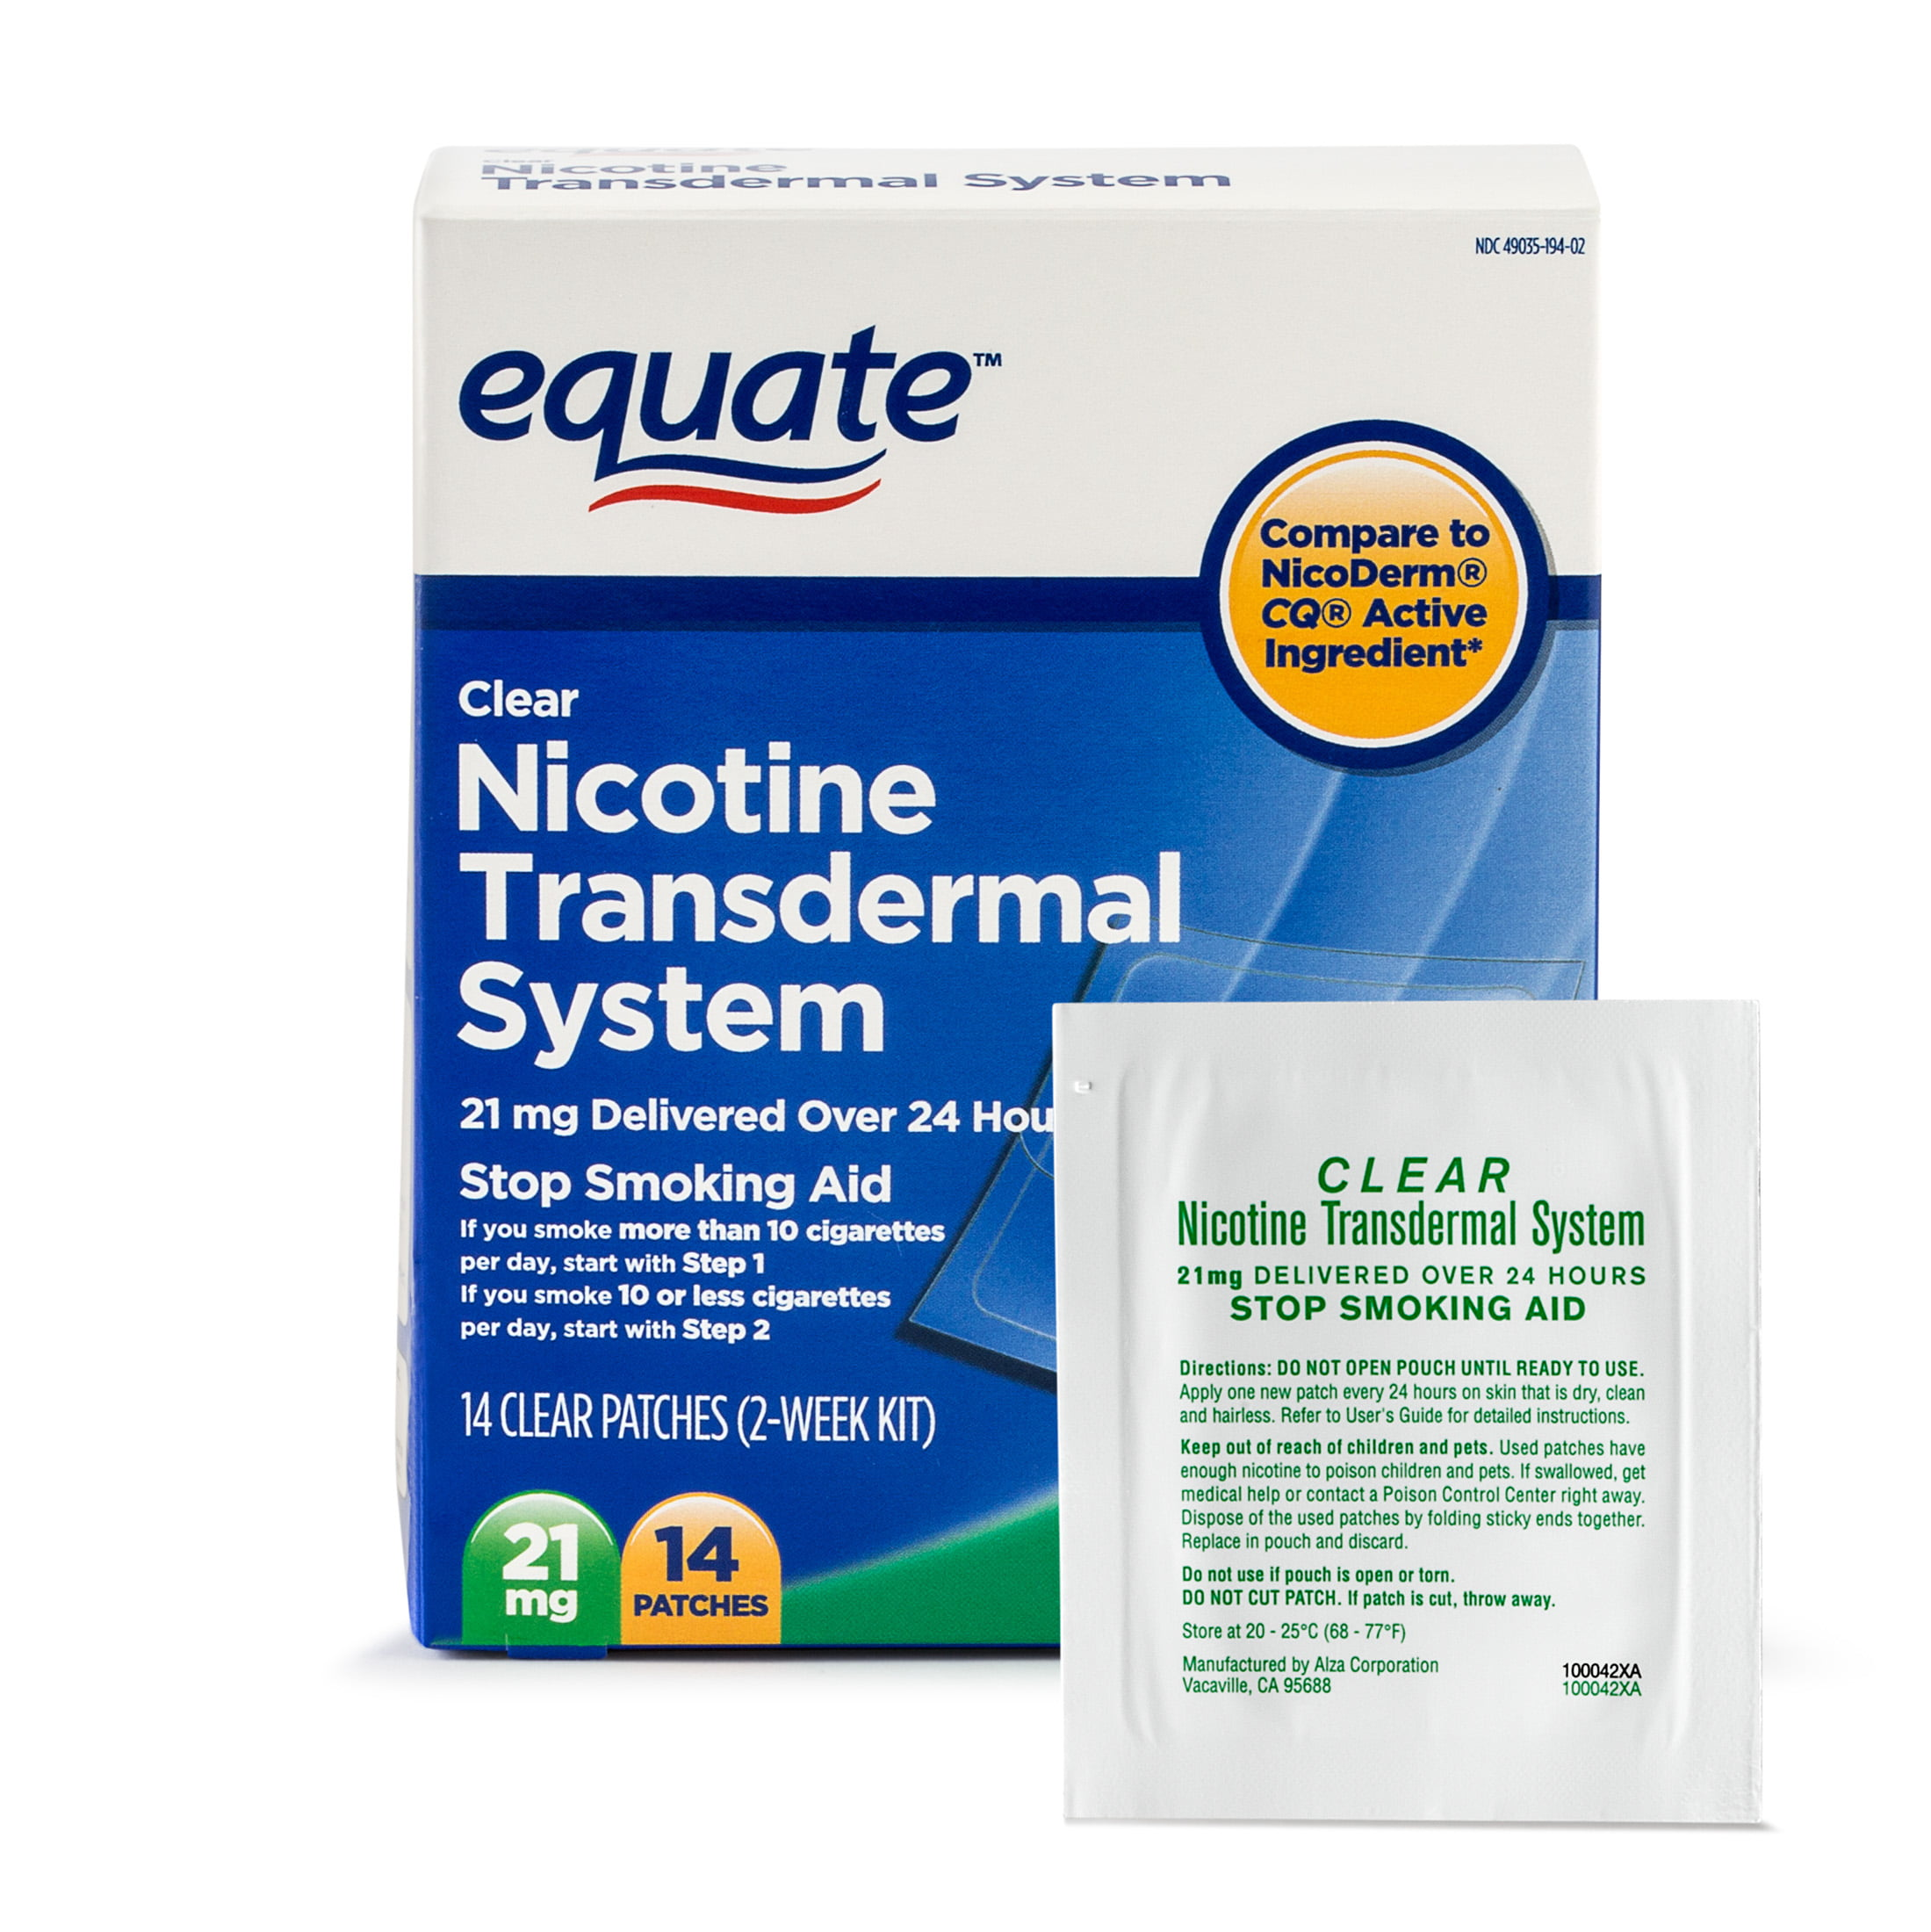 Equate Nicotine Transdermal System Step 1 Clear Patches, 21 mg, 14 Ct -  Walmart.com